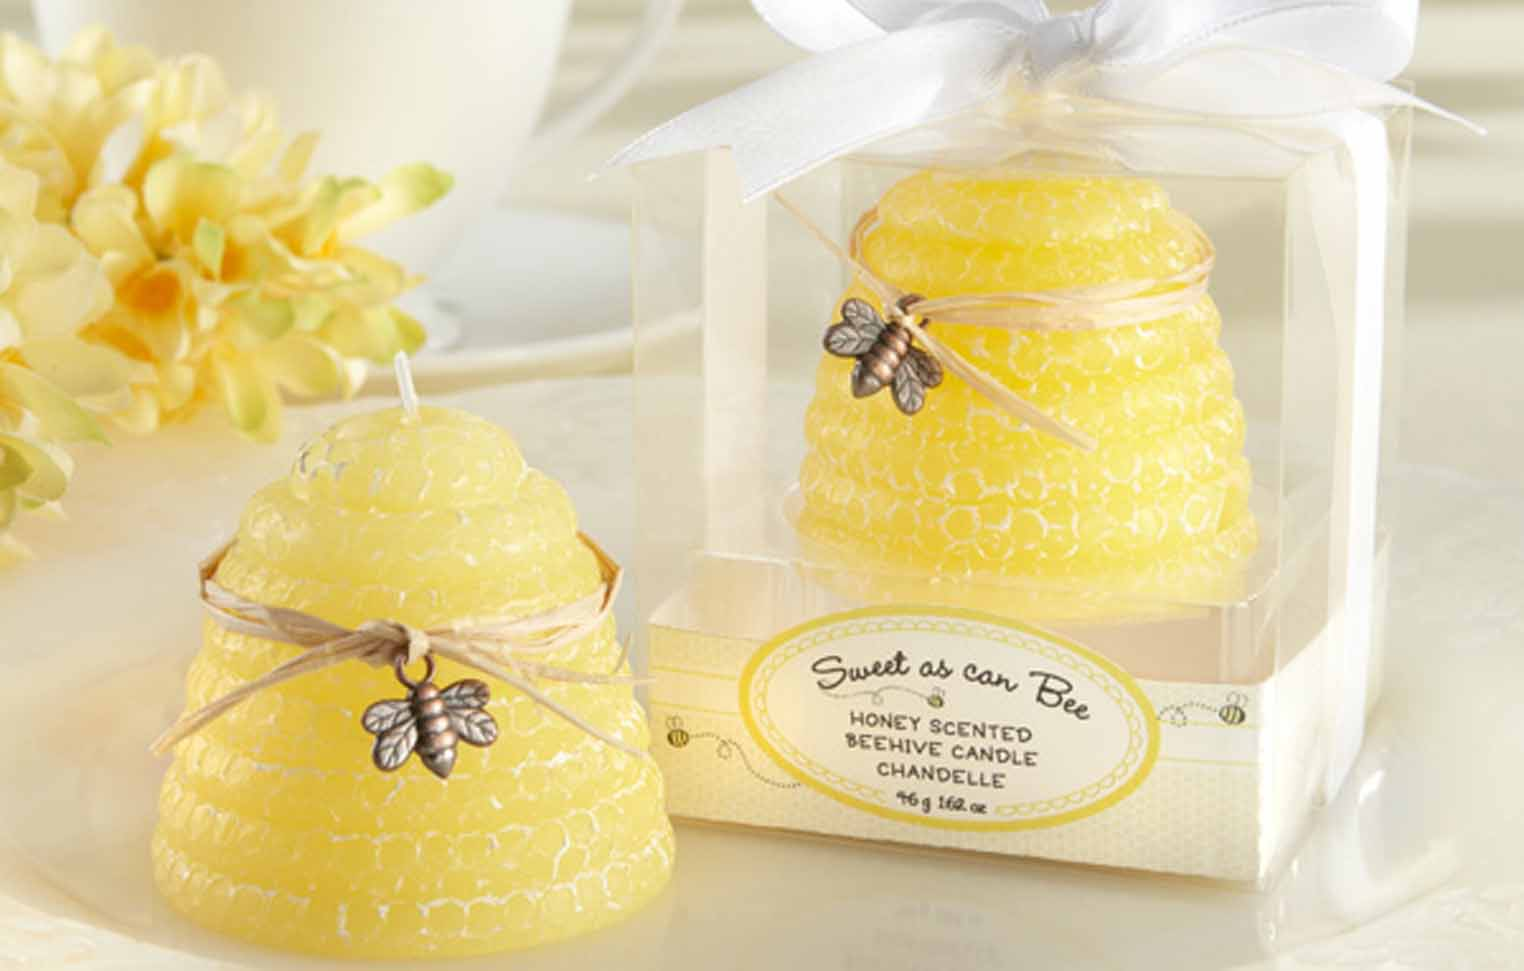 Personalised Wedding Favors Worth More Than Expensive Ones